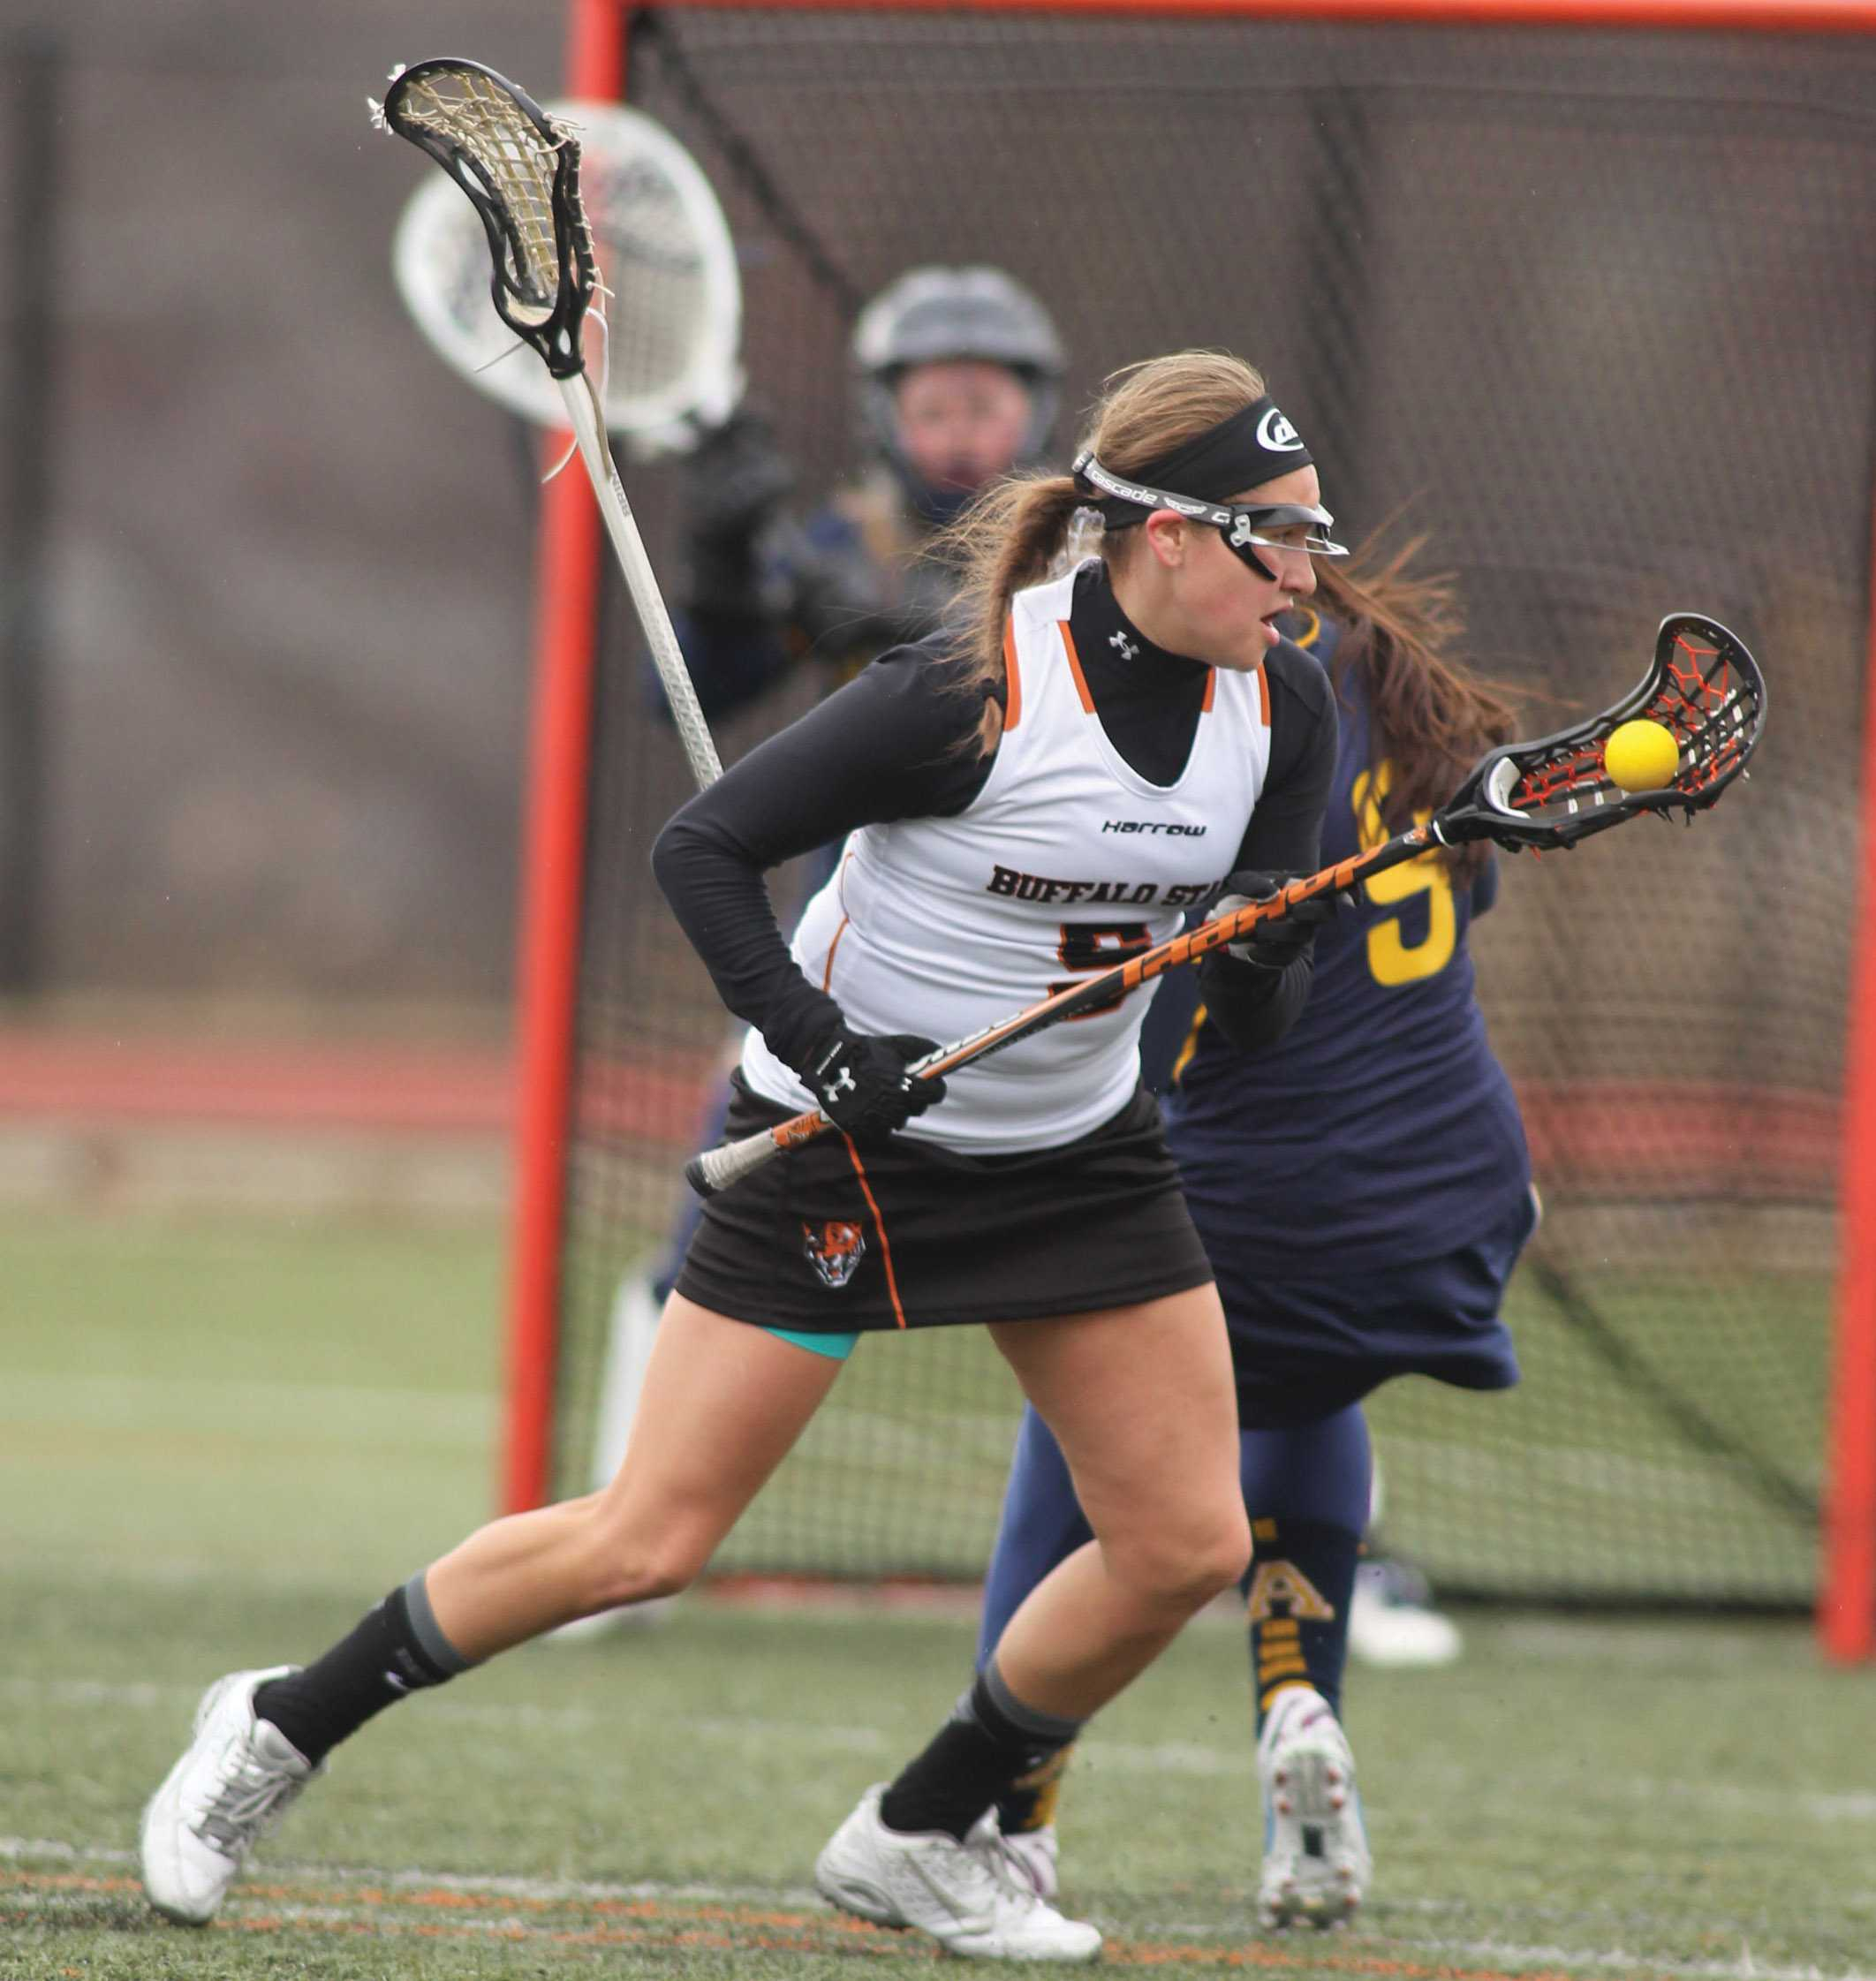 Sophomore attacker Alanna Herne leads the SUNYAC in goals (21).